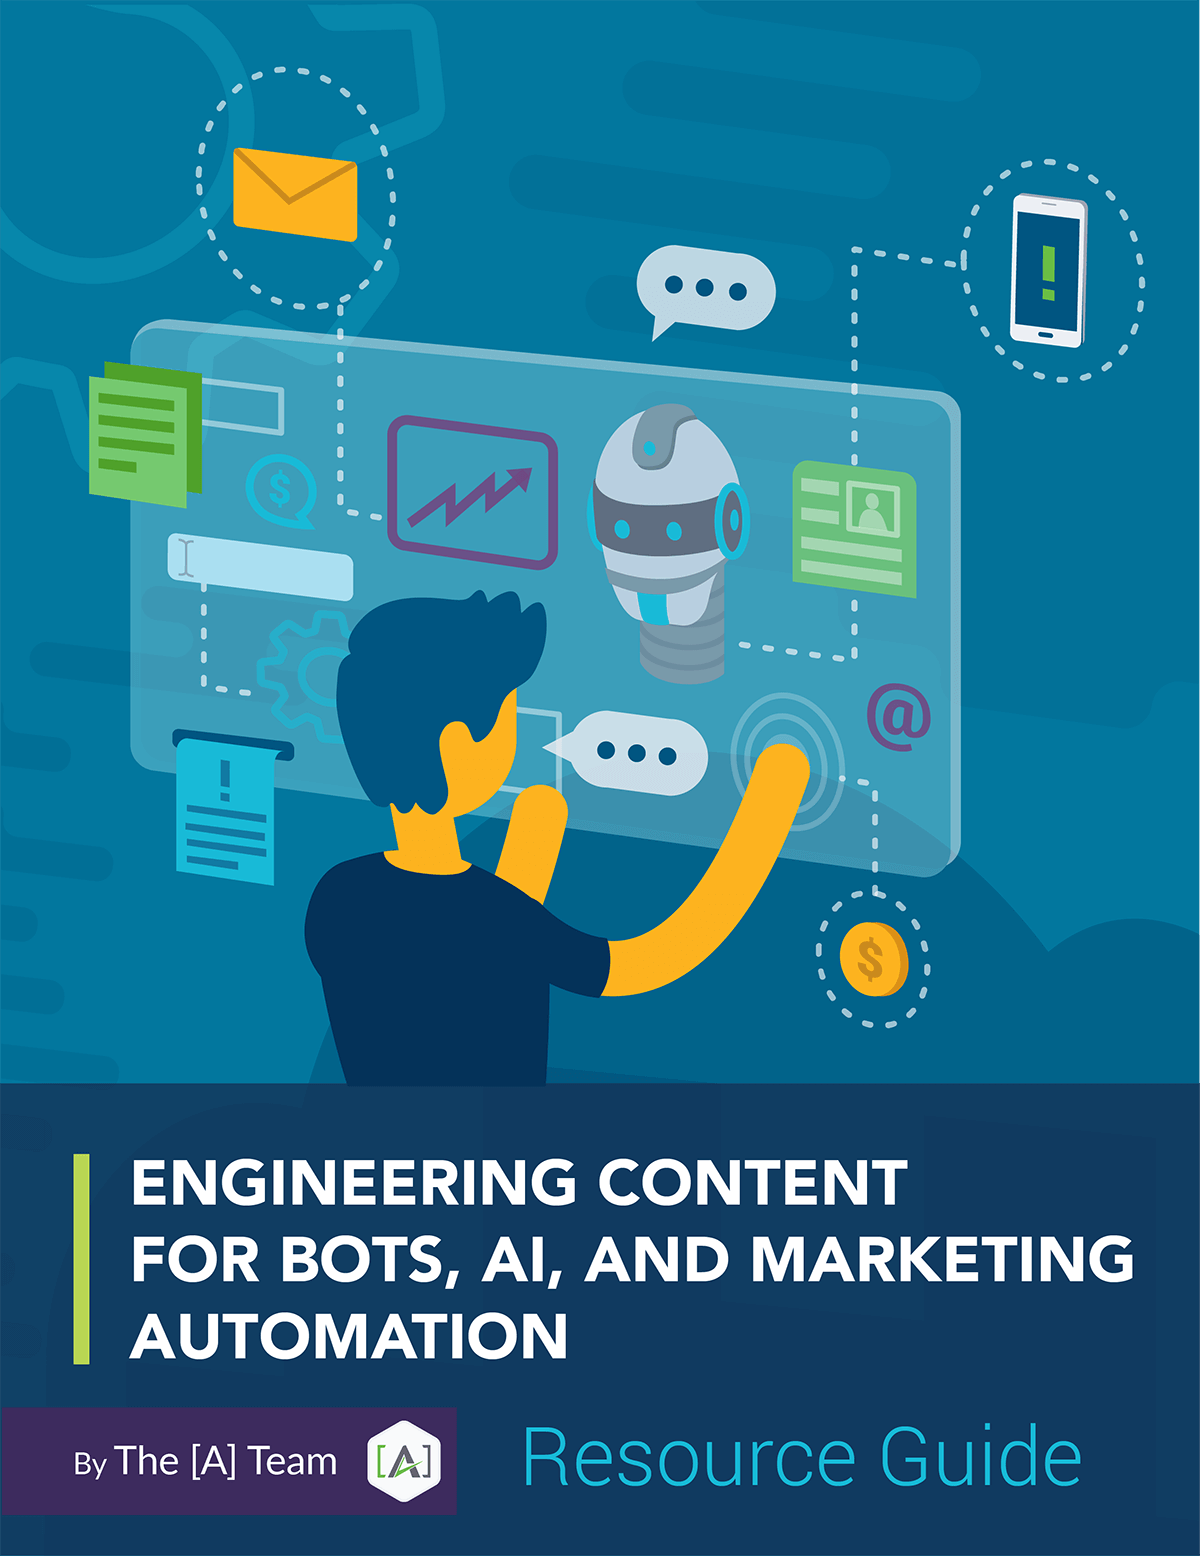 Resource Guide: Engineering Content for Bots, AI, and Marketing Automation